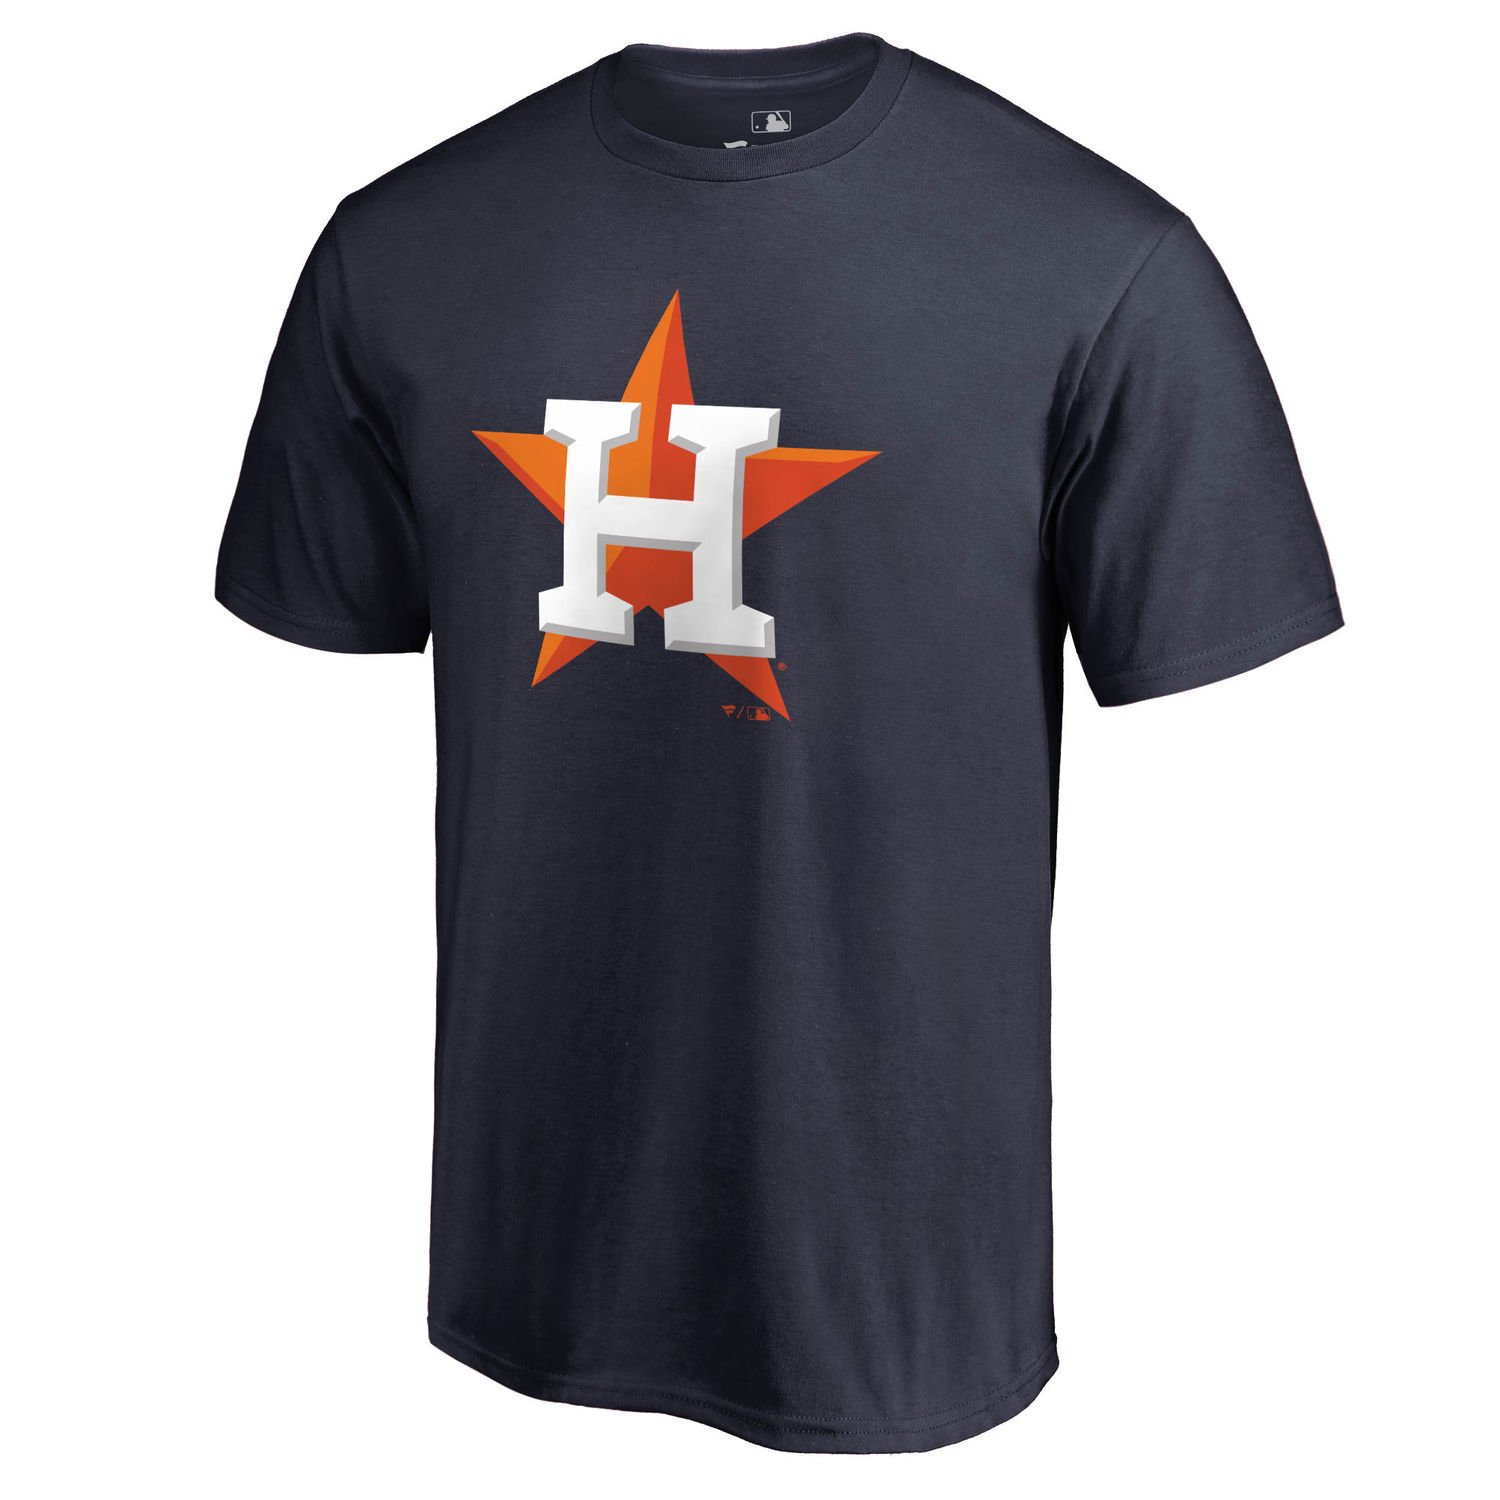 OuterStuff SHIRT ボーイズ B0752Y7DFF X-Large 18/20|Houston Astros Houston Astros X-Large 18/20